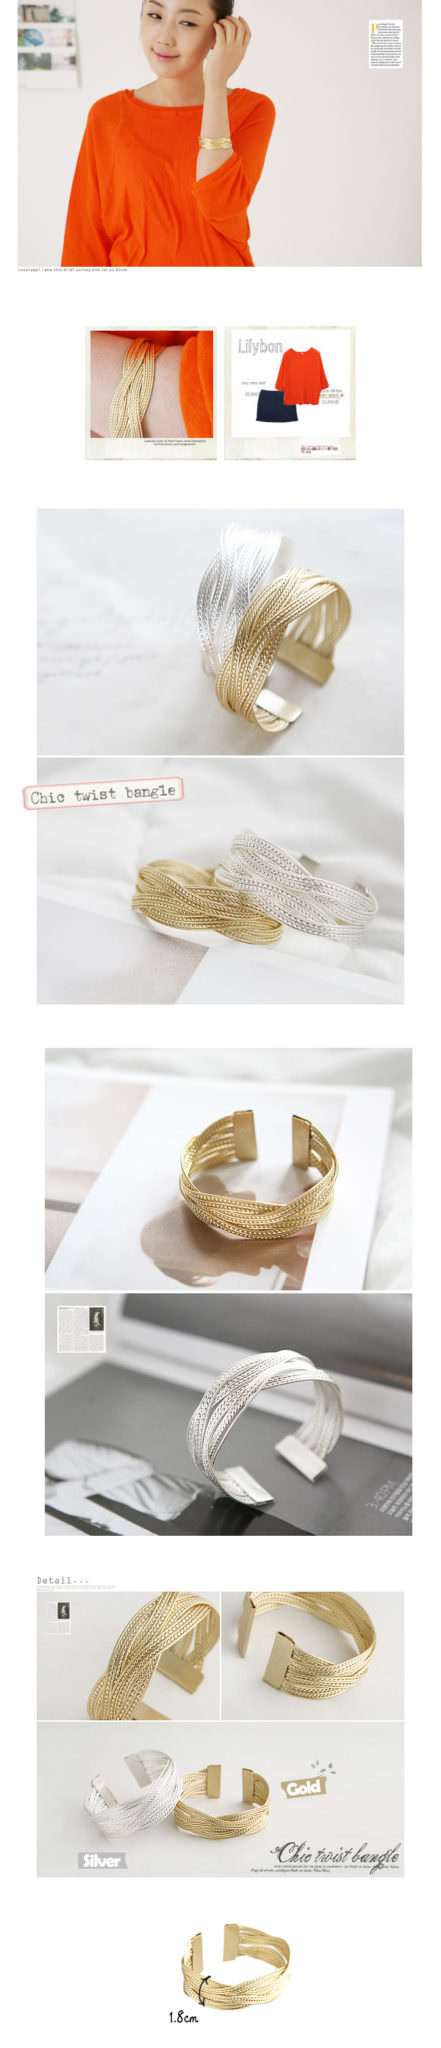 11528-aabf17d0ab4b7b3c7049d6322fedd0a3 Chic 18K Gold/Silver Plated Twisted Cuff Fashion Bracelets